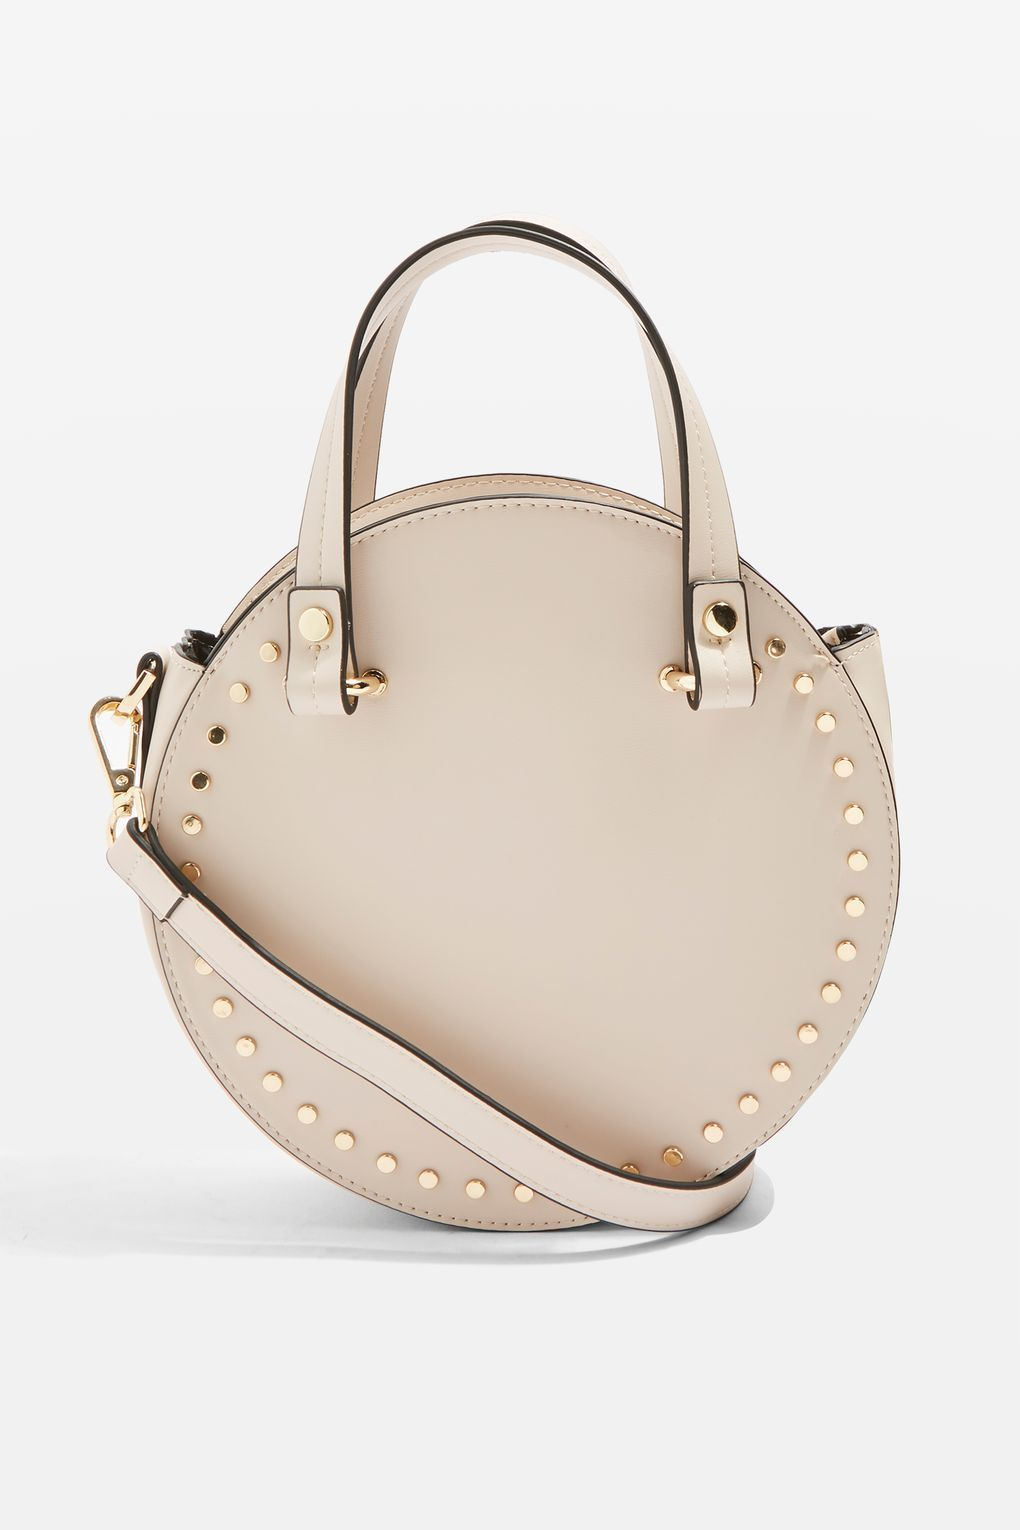 ebdbbb324c6 Taylor Circle Studded Tote Bag - Bags   Accessories- Topshop